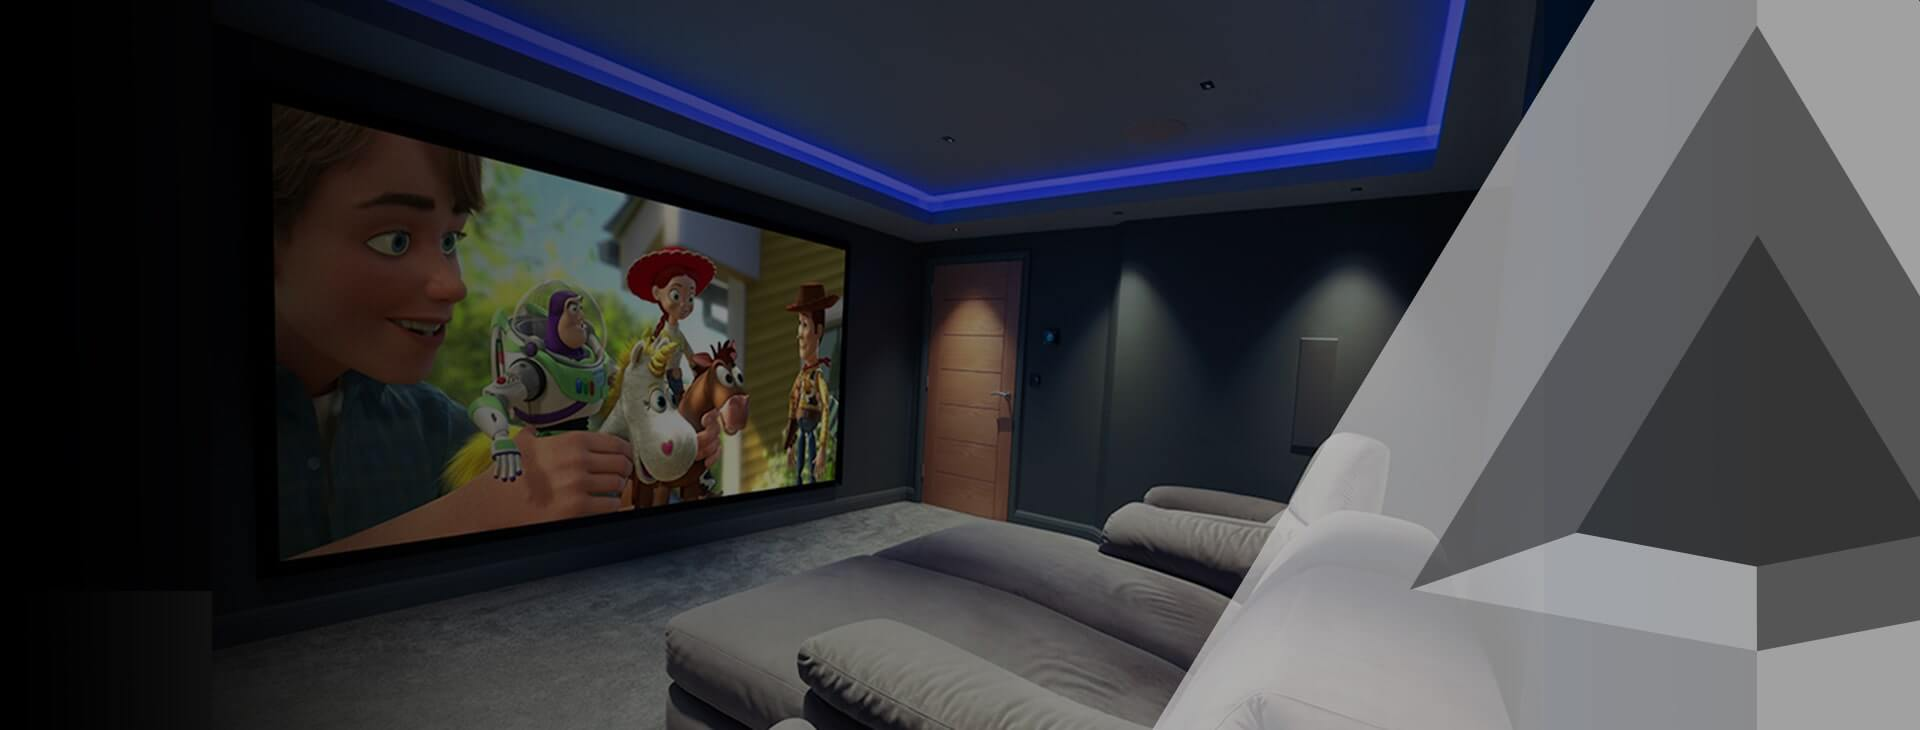 Home Cinema and Media Rooms